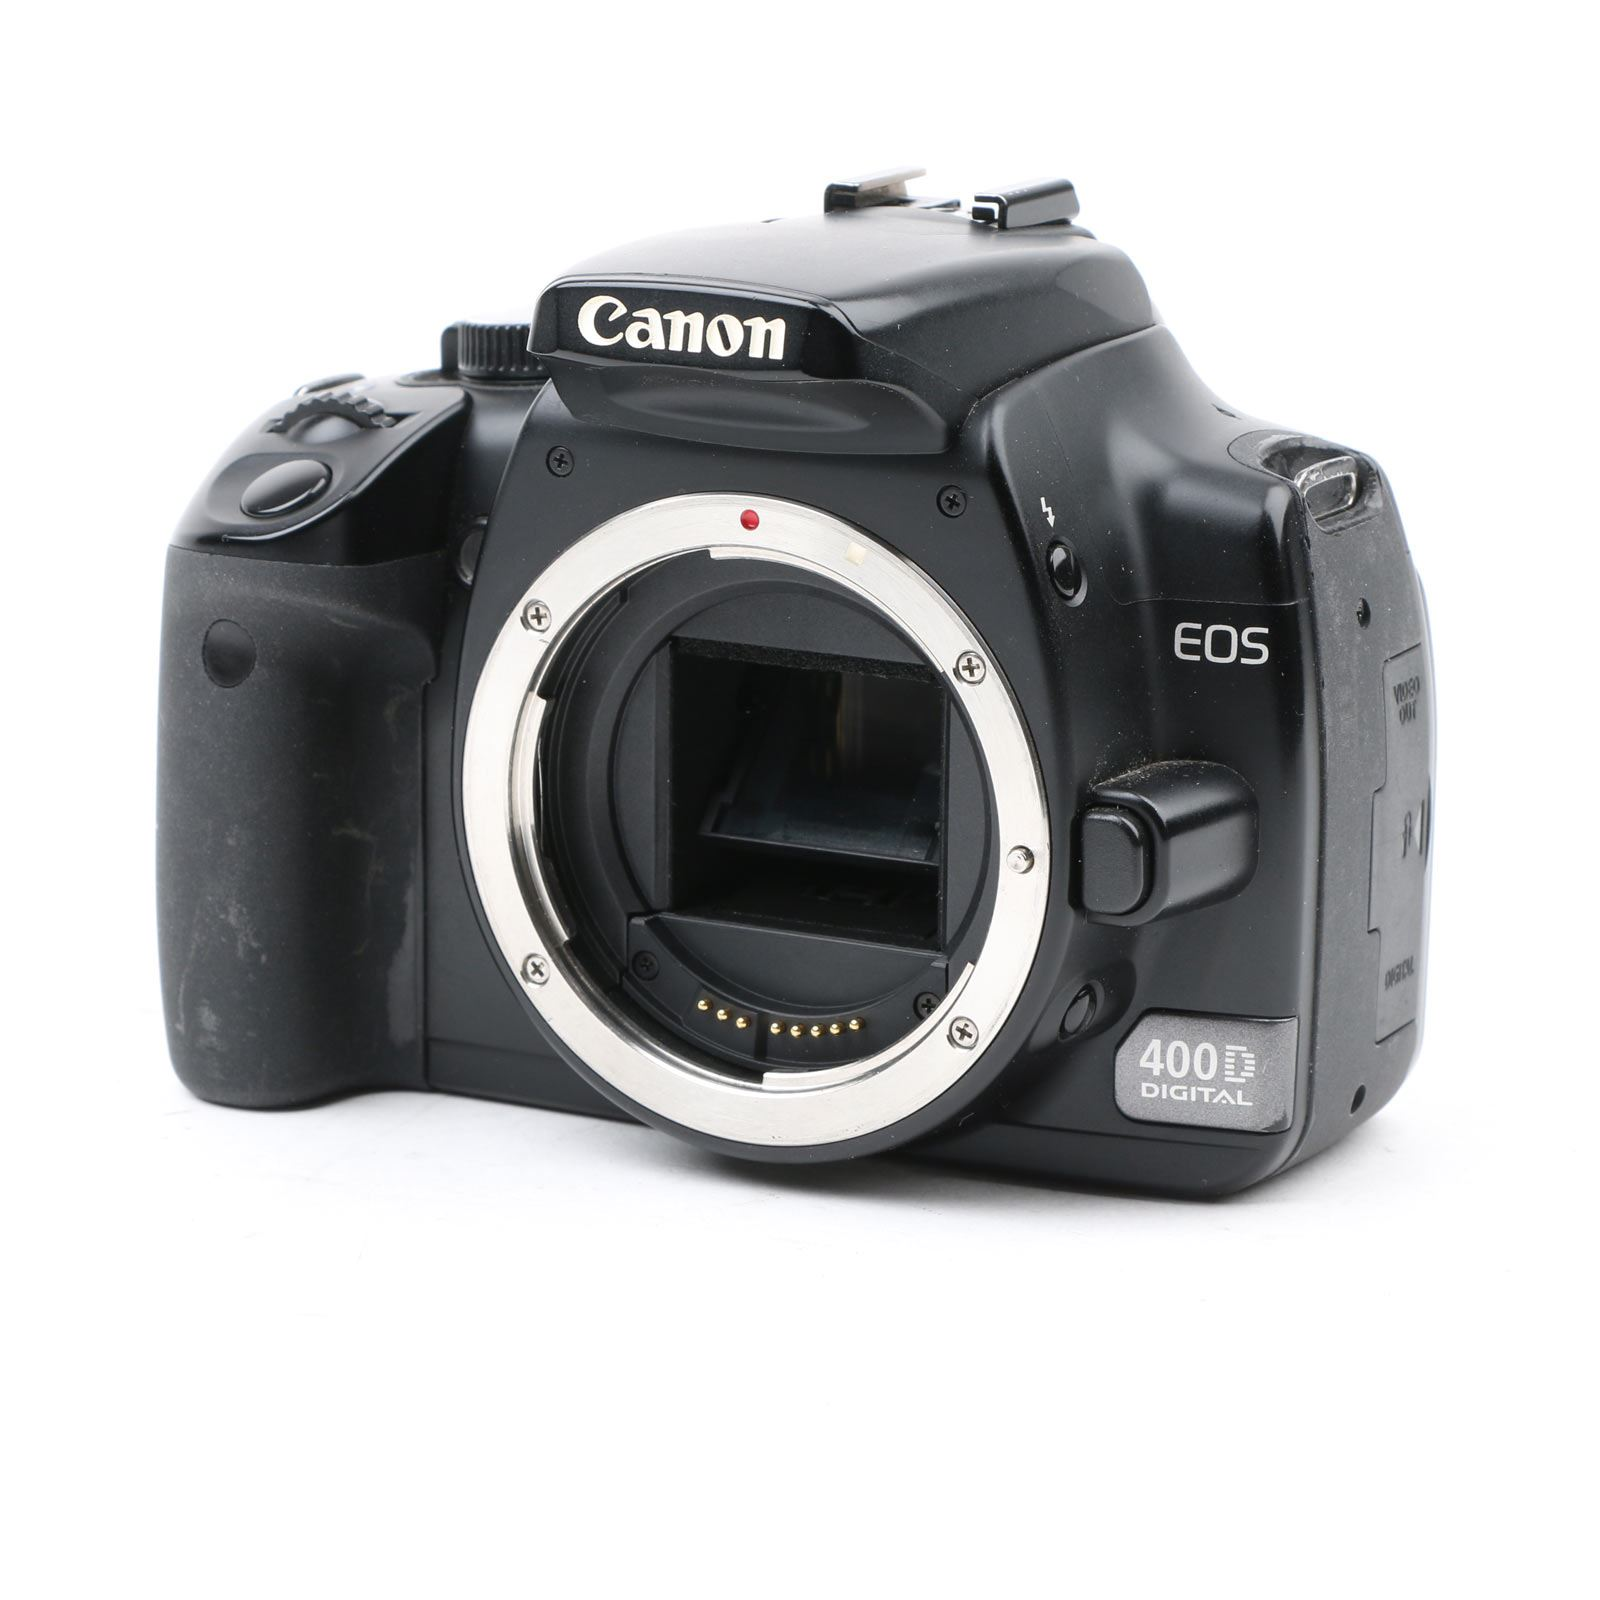 Image of Used Canon EOS 400D Body